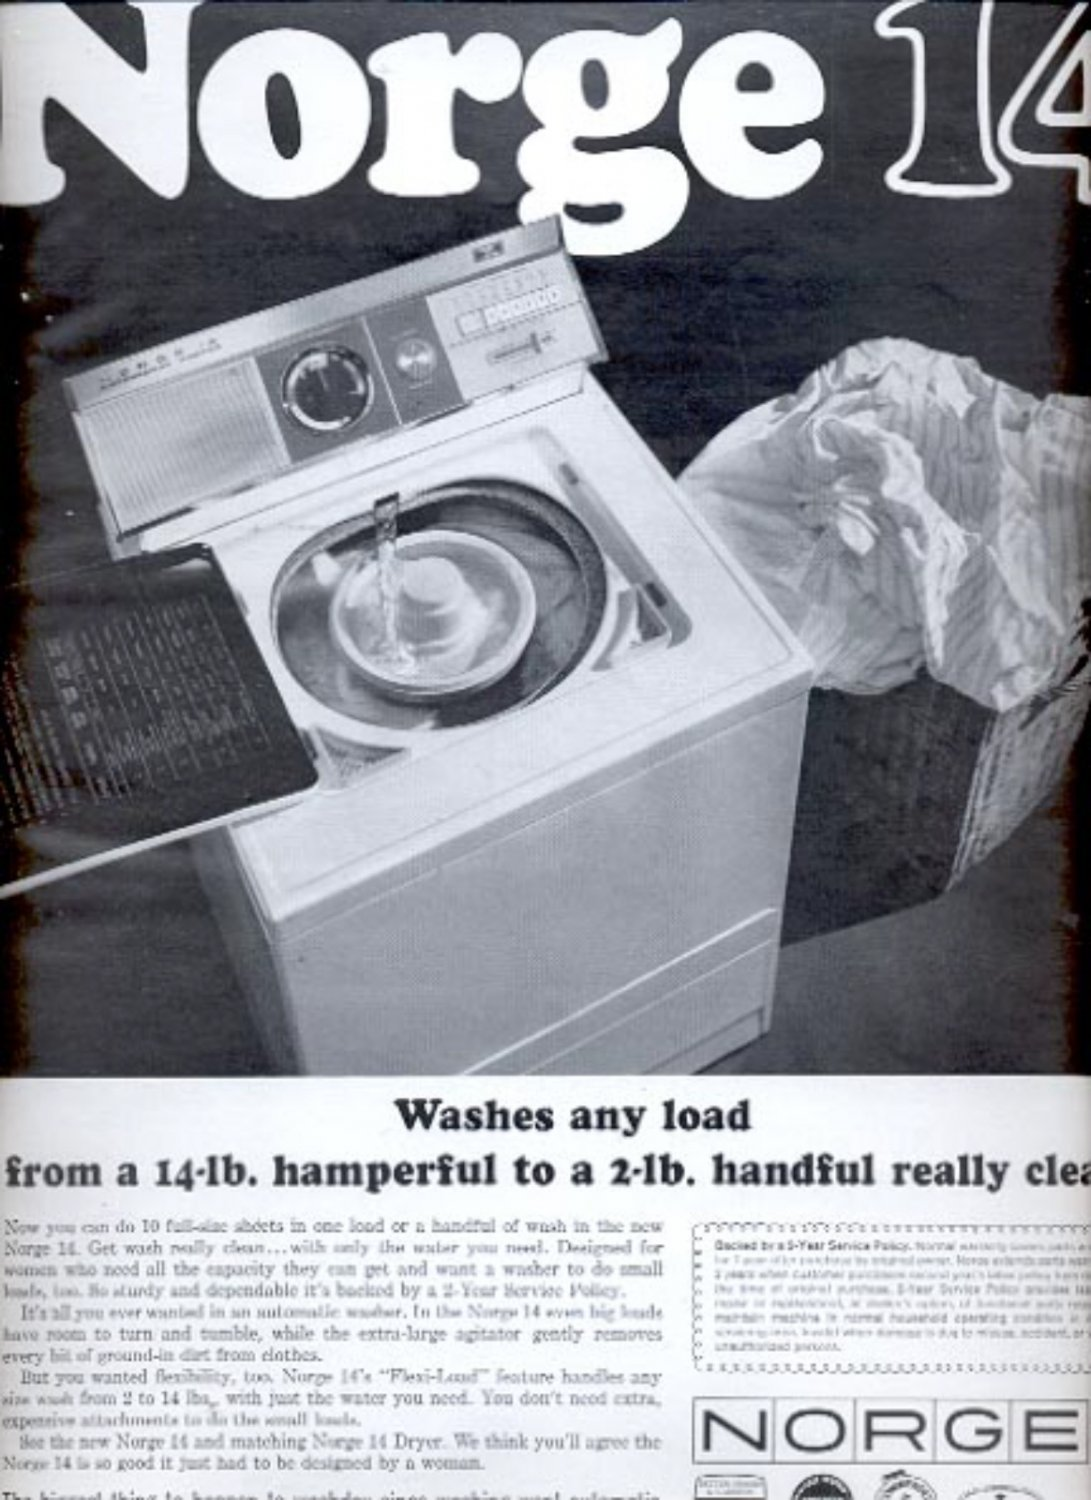 1963 Norge automatic washing machine    ad (# 5337)